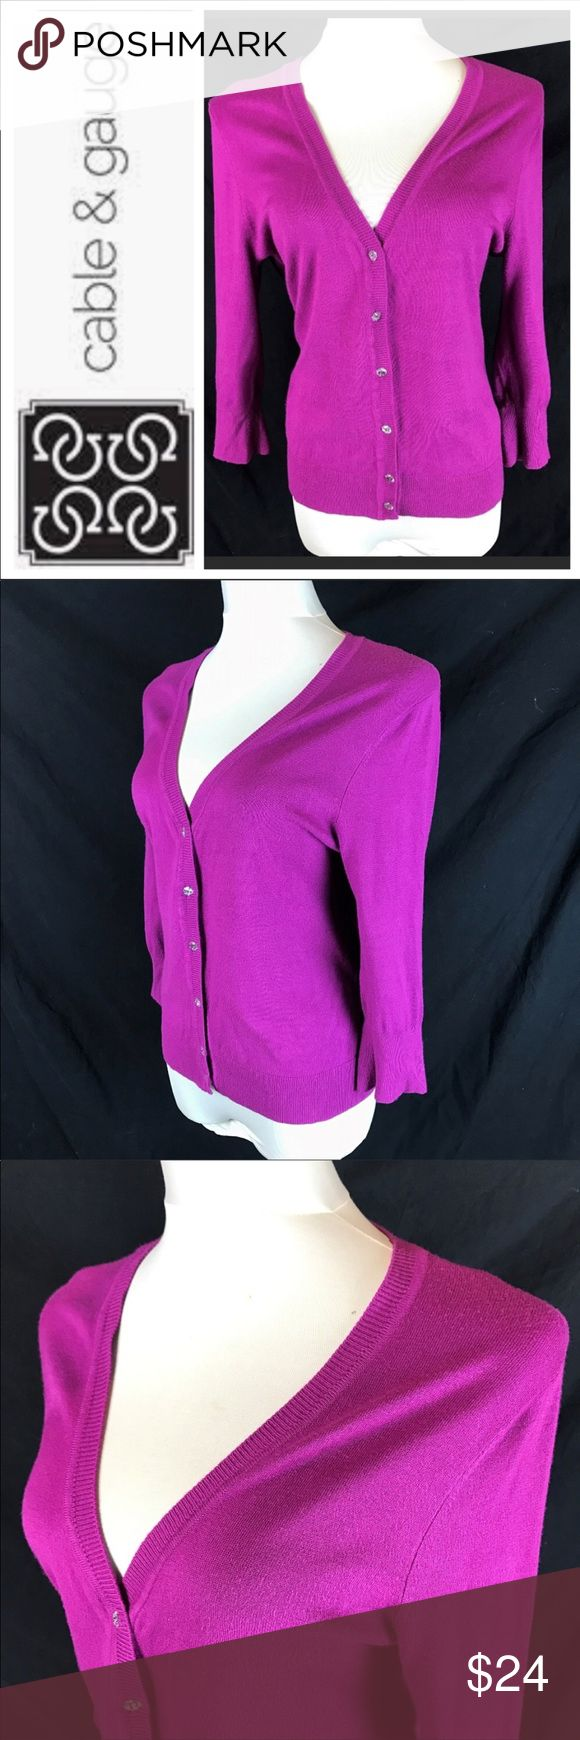 Cable & Gauge Magenta Pink Crystal Button Cardigan Sweater is in great used condition with minimal pills and no stains  Measurements taken laying flat   Bust- 19  Sleeve- 18  Length- 24  Item # 12-28-17 Cable & Gauge Sweaters Cardigans